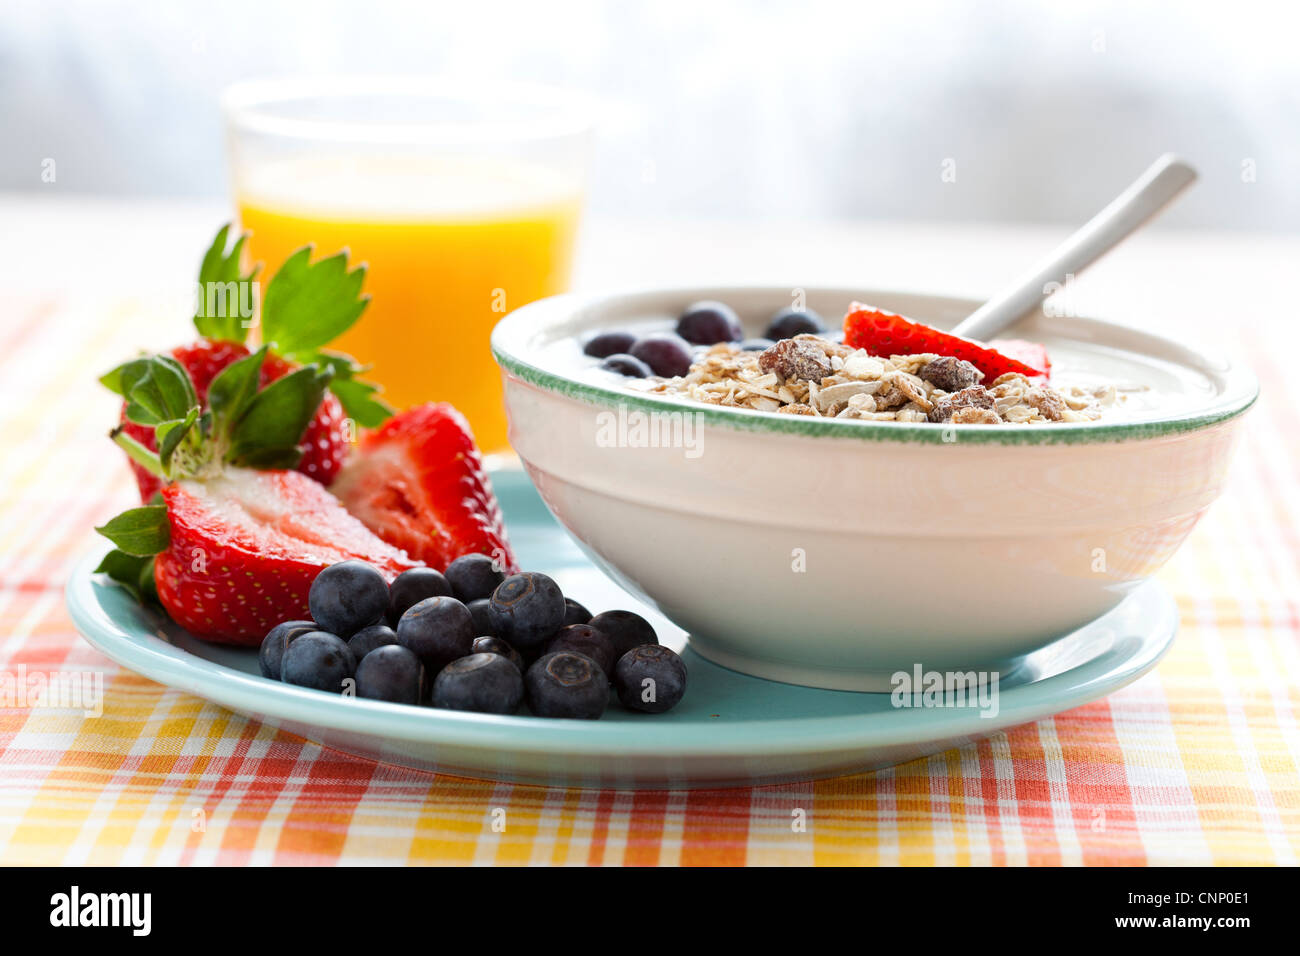 Bowl of muesli with yoghurt, strawberries and blueberries, boiled egg and orange juice for healthy breakfast - Stock Image